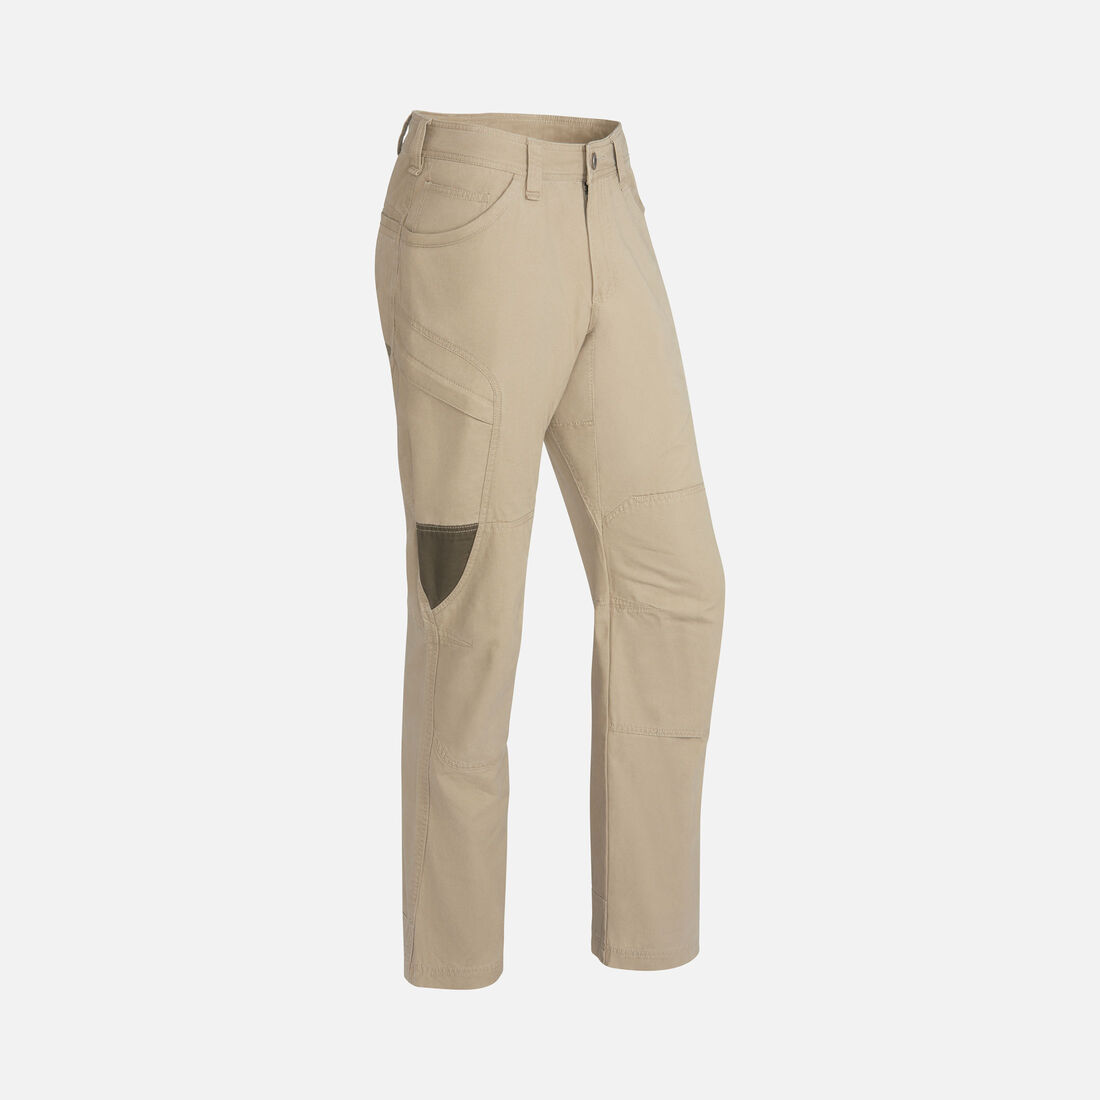 MEN'S NEWPORT CASUAL CARGO TROUSERS in Khaki/Olive Green - large view.